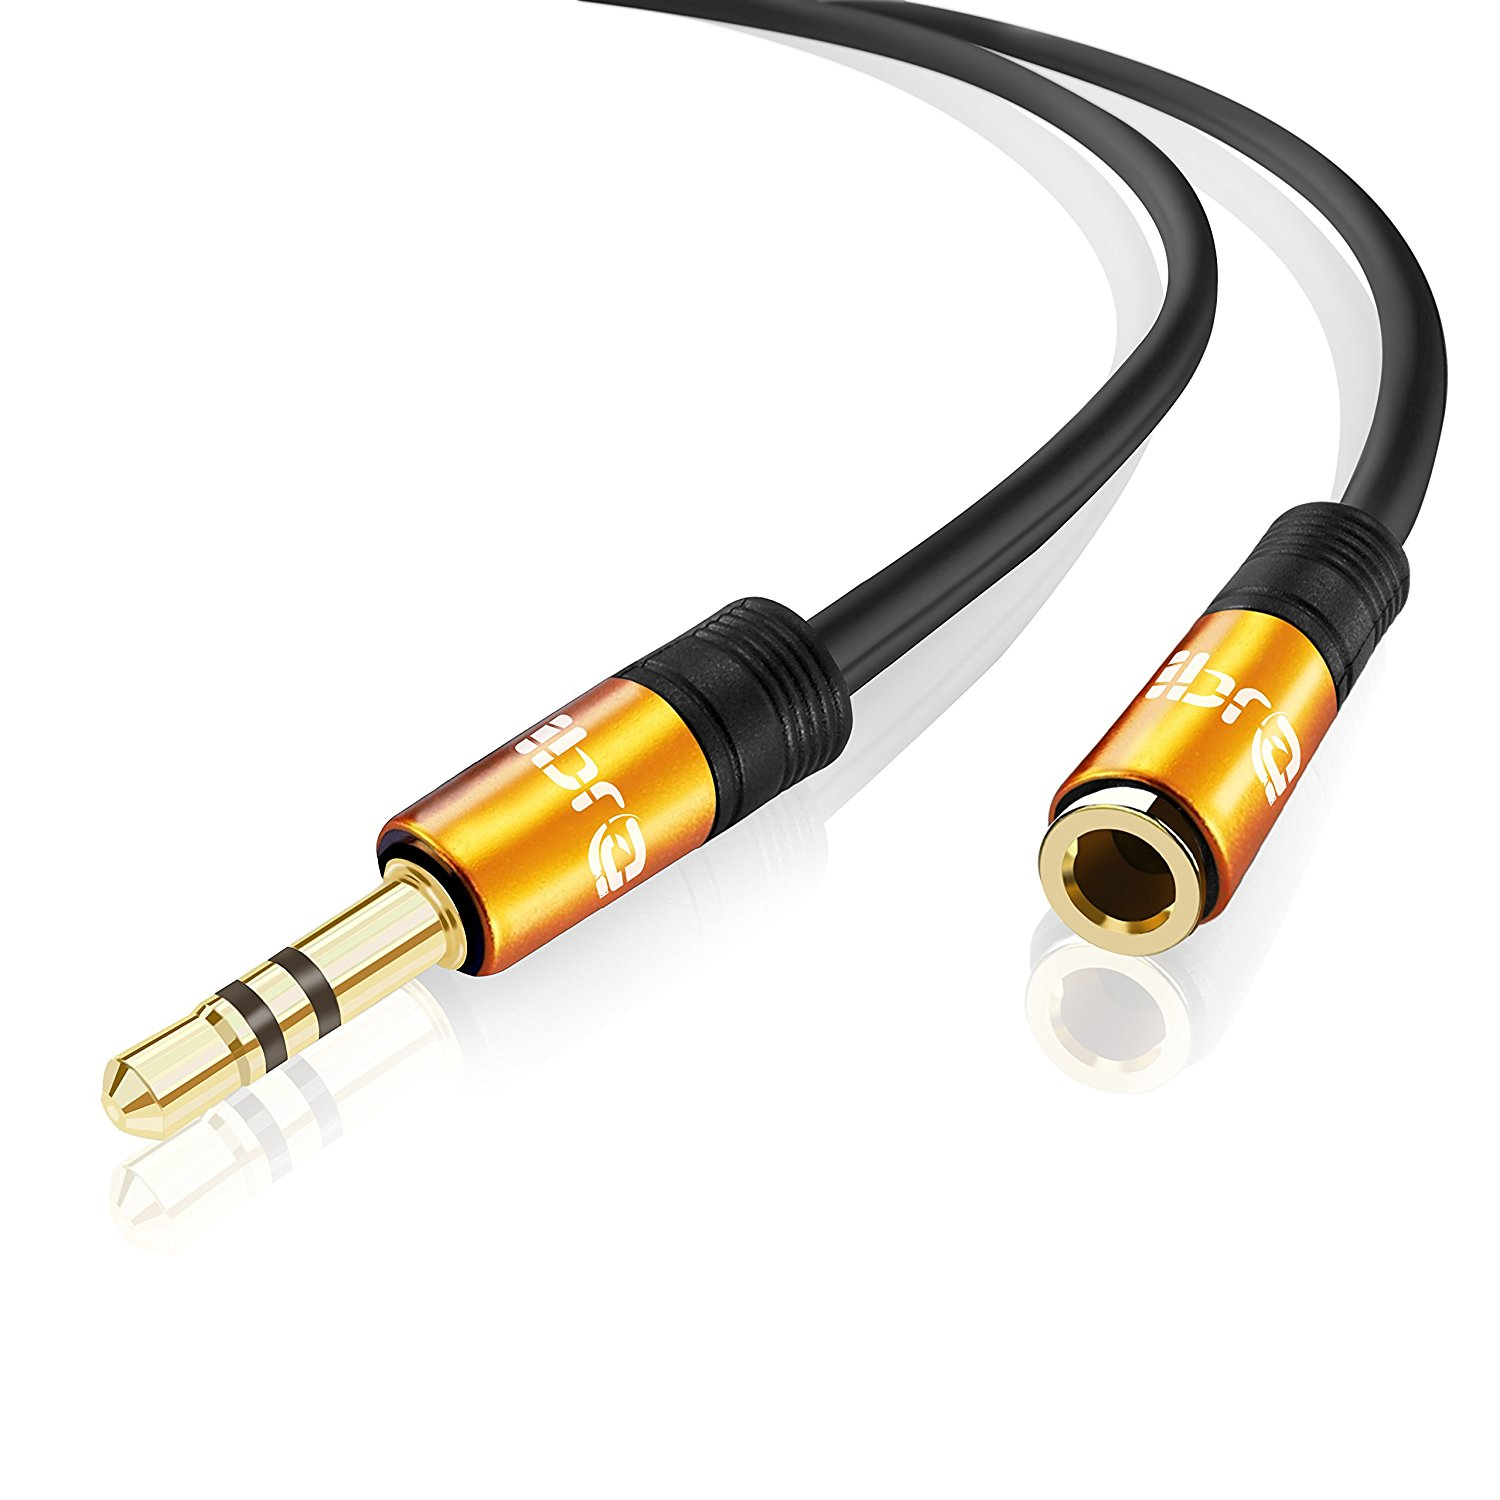 IBRA 0.5M Stereo Jack Extension Cable 3.5mm Male > 3.5mm Female - Orange